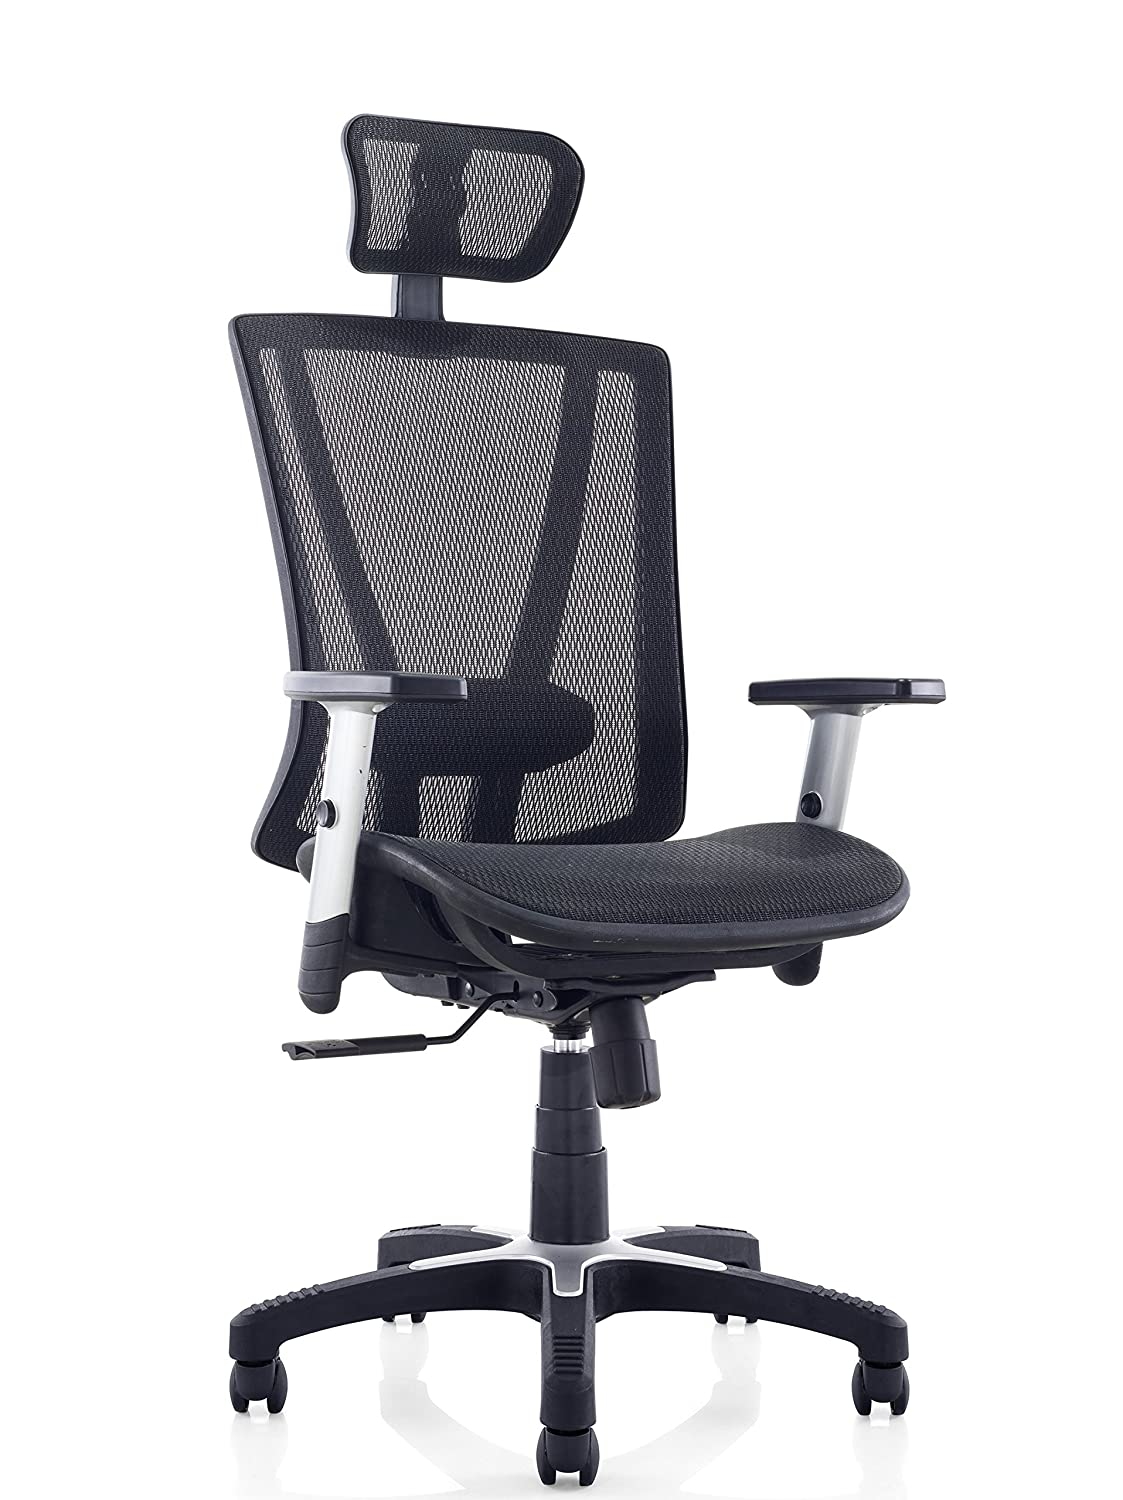 ErgoMax Fully Meshed Ergonomic Height w/Armrests & Headrest Adjustable Office Chair, 52 Inch Max, Black